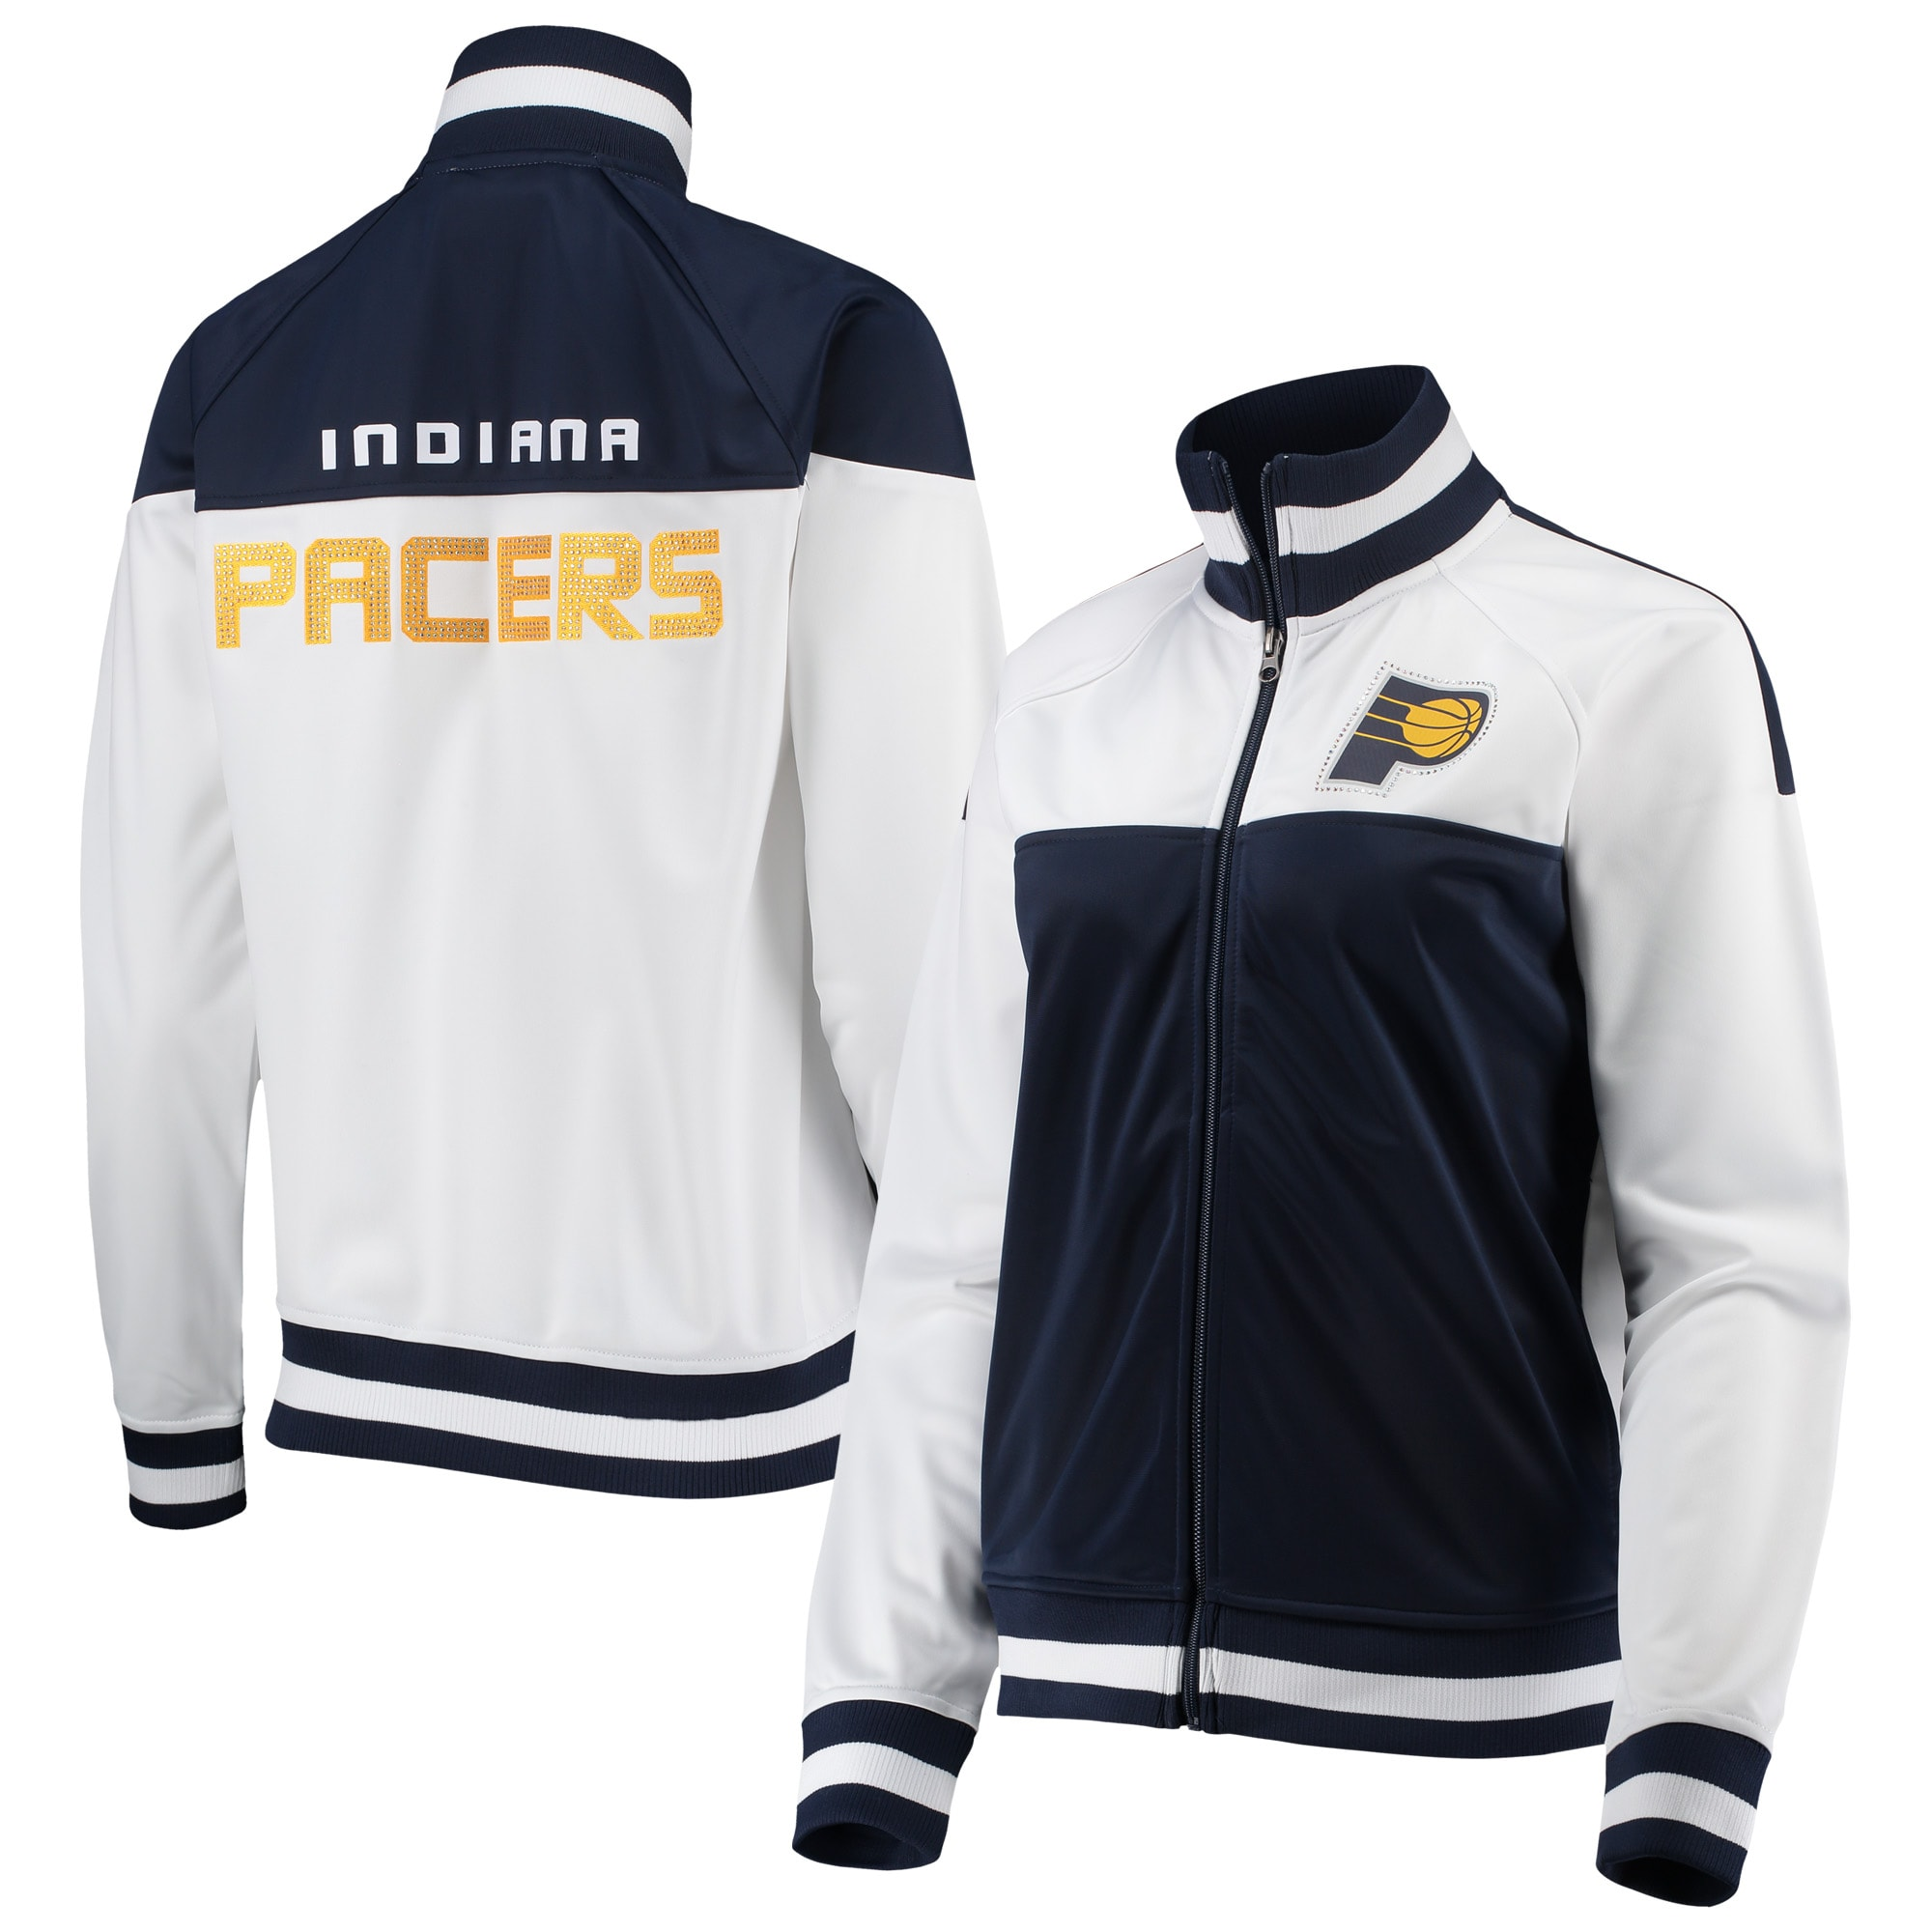 Indiana Pacers G-III 4Her by Carl Banks Women's Tip-Off Rhinestone Tricot Full-Zip Track Jacket - White/Navy